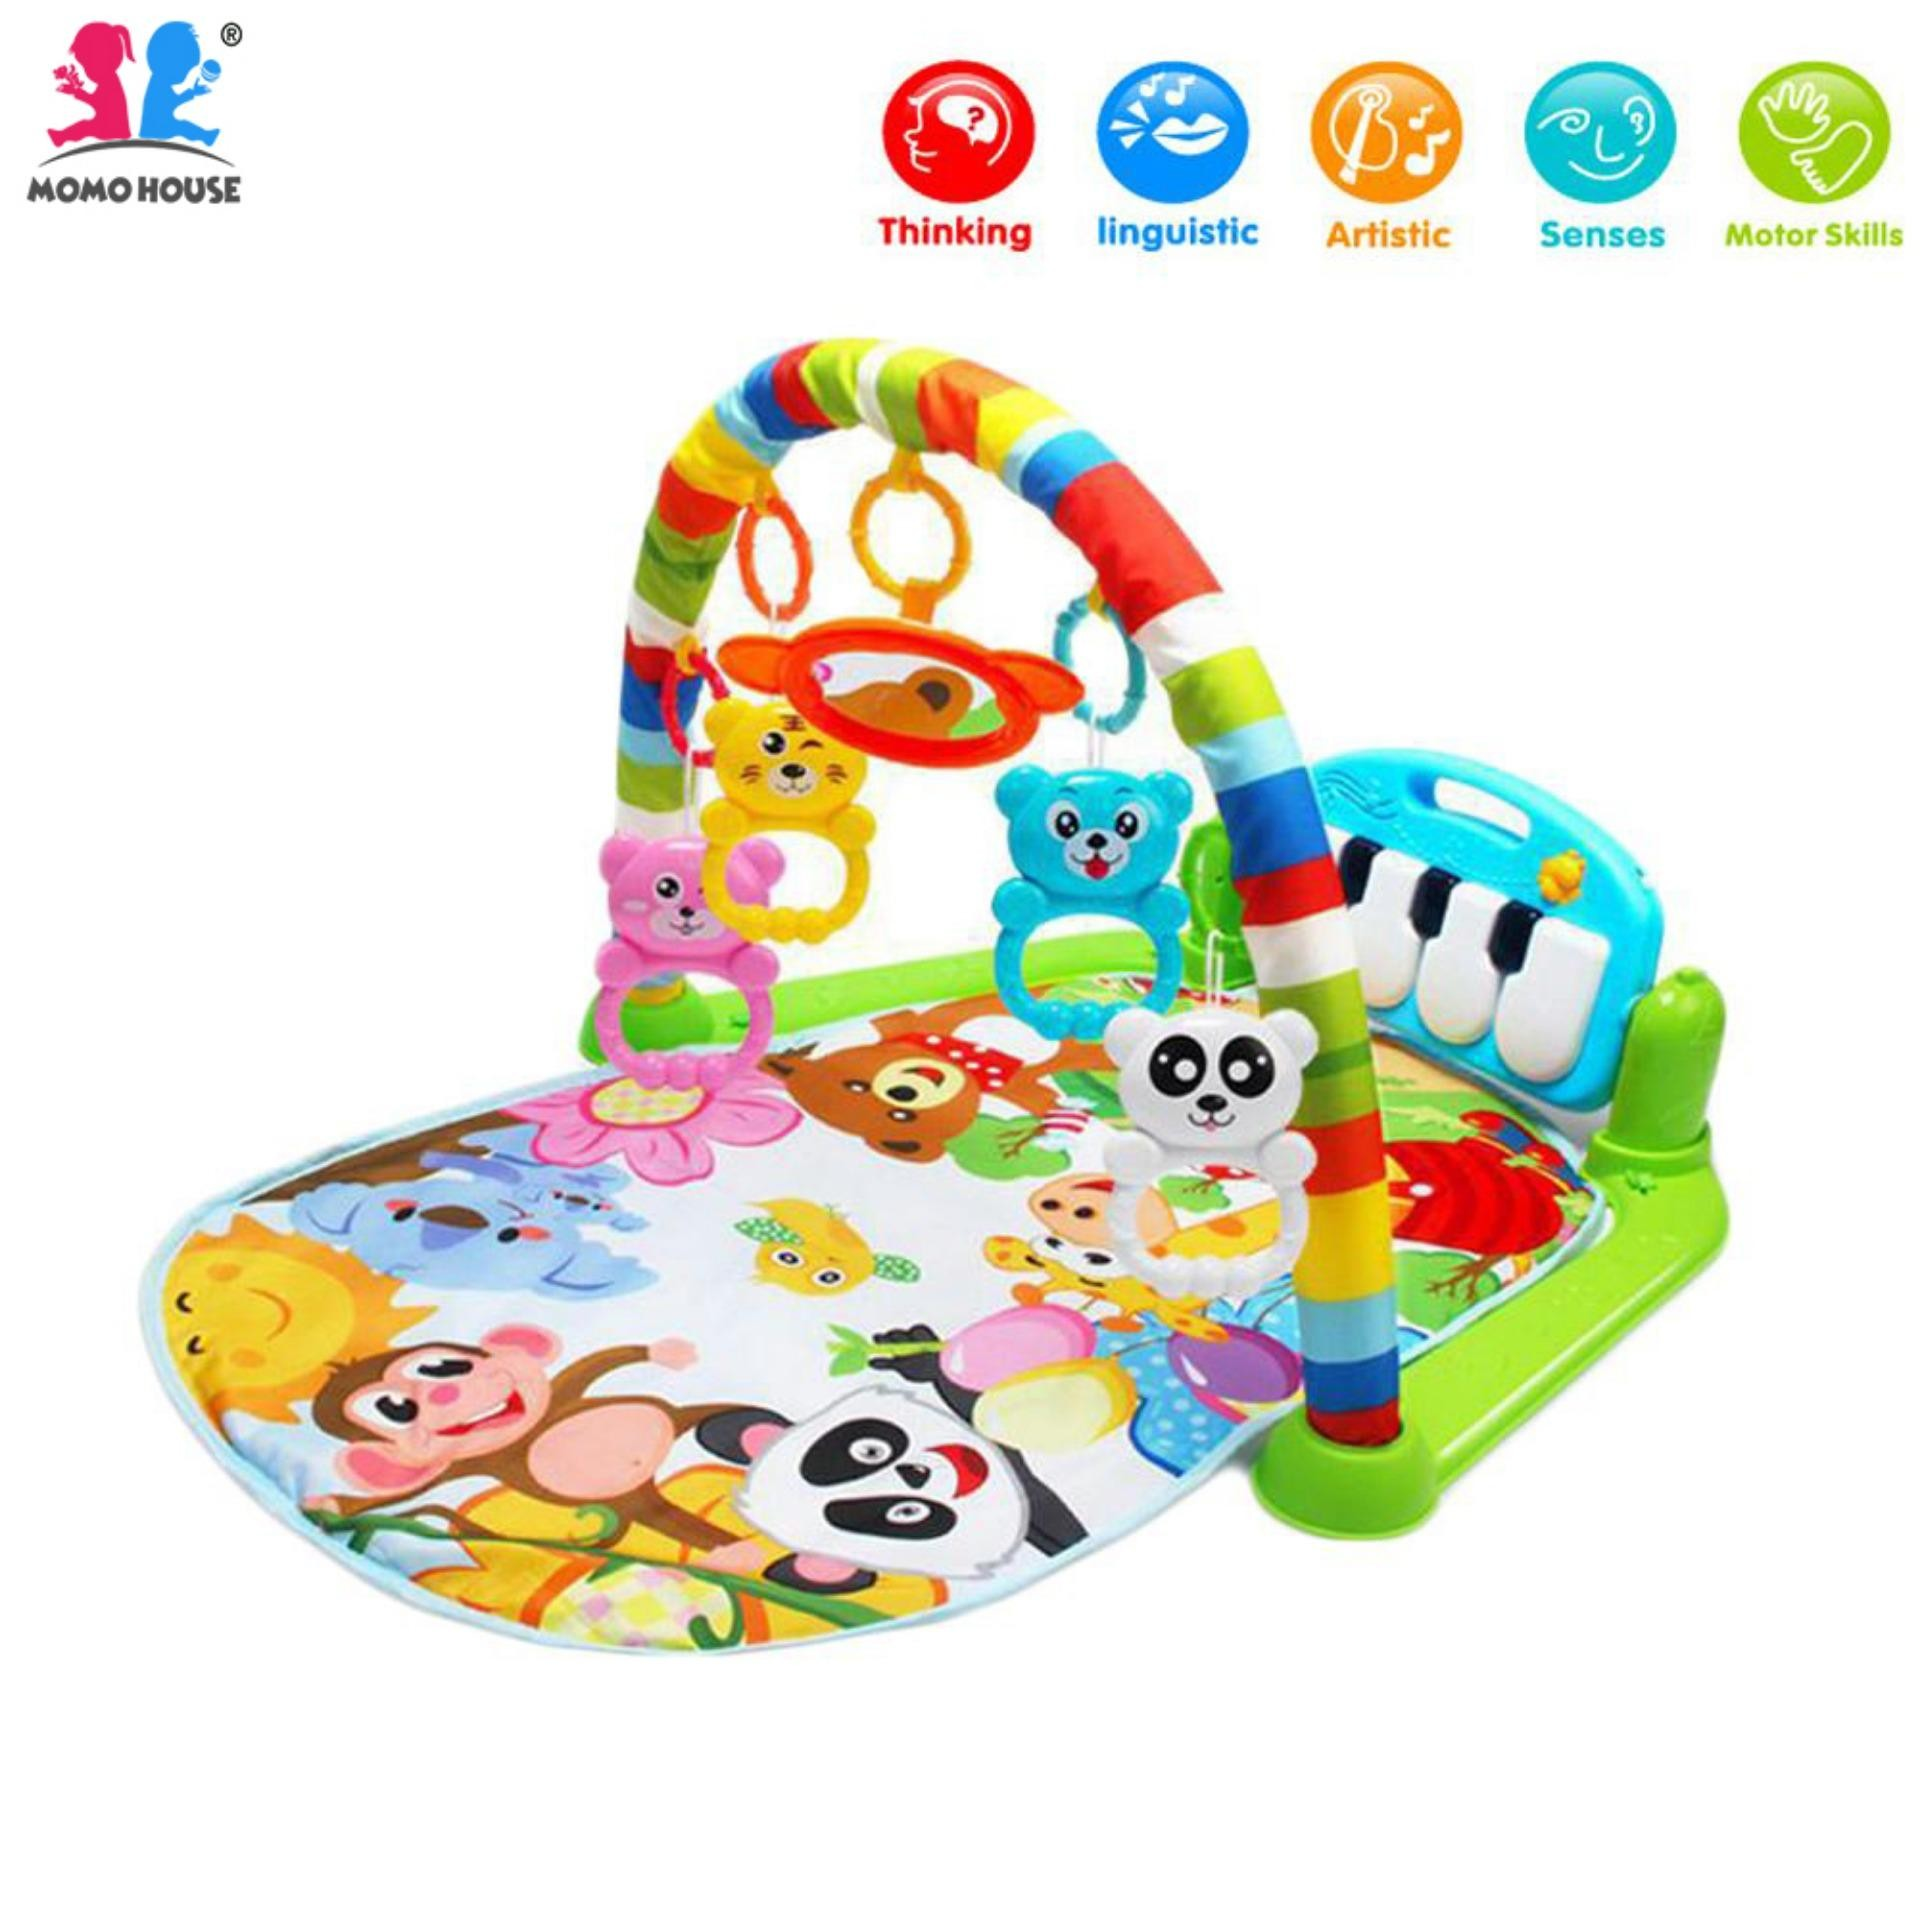 MOMO House Baby Toddler Playgym Playmat Play Gym With Music & Lights Keyboard Version